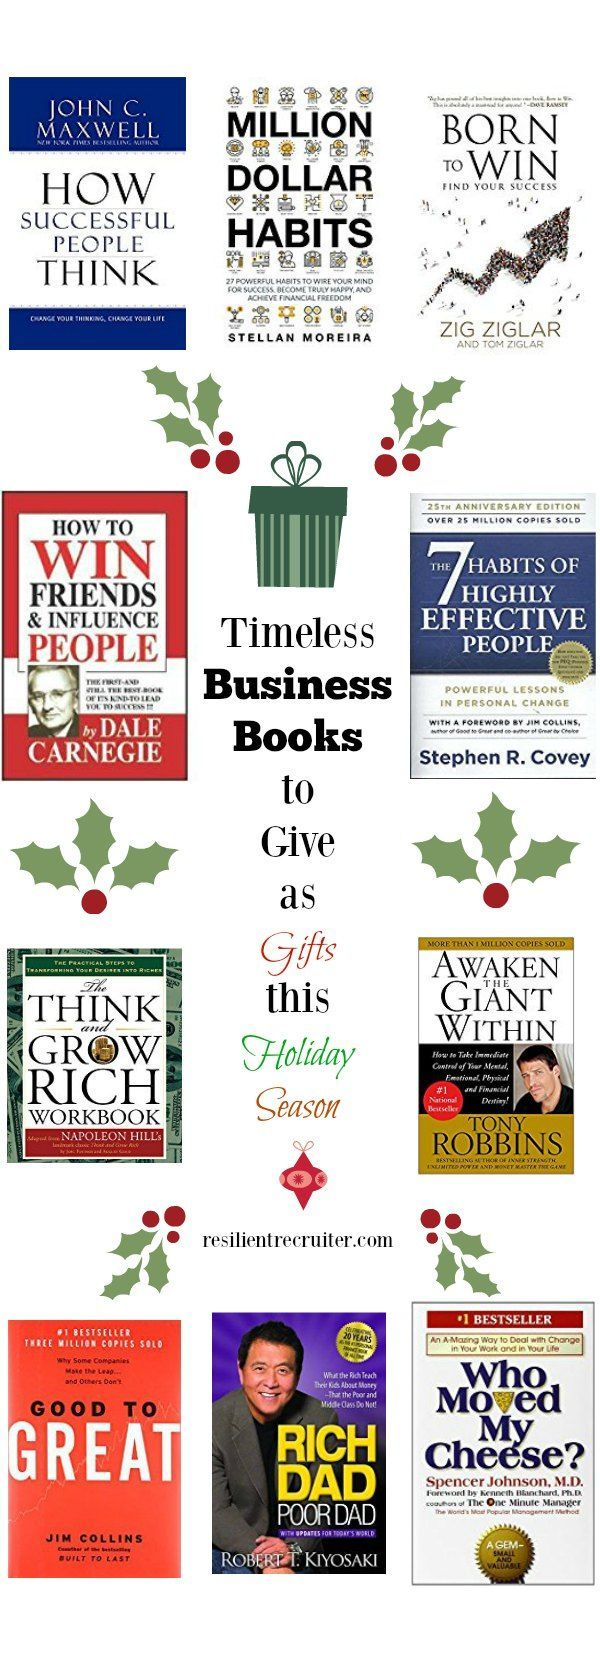 Looking for some enriching business books for clients, coworkers, or a new grad?  Check out my top picks for books on Business and Success!  #giftideas #gifts #businessbooks #goodreads #business #success #bookreviews #careeradvancement #career